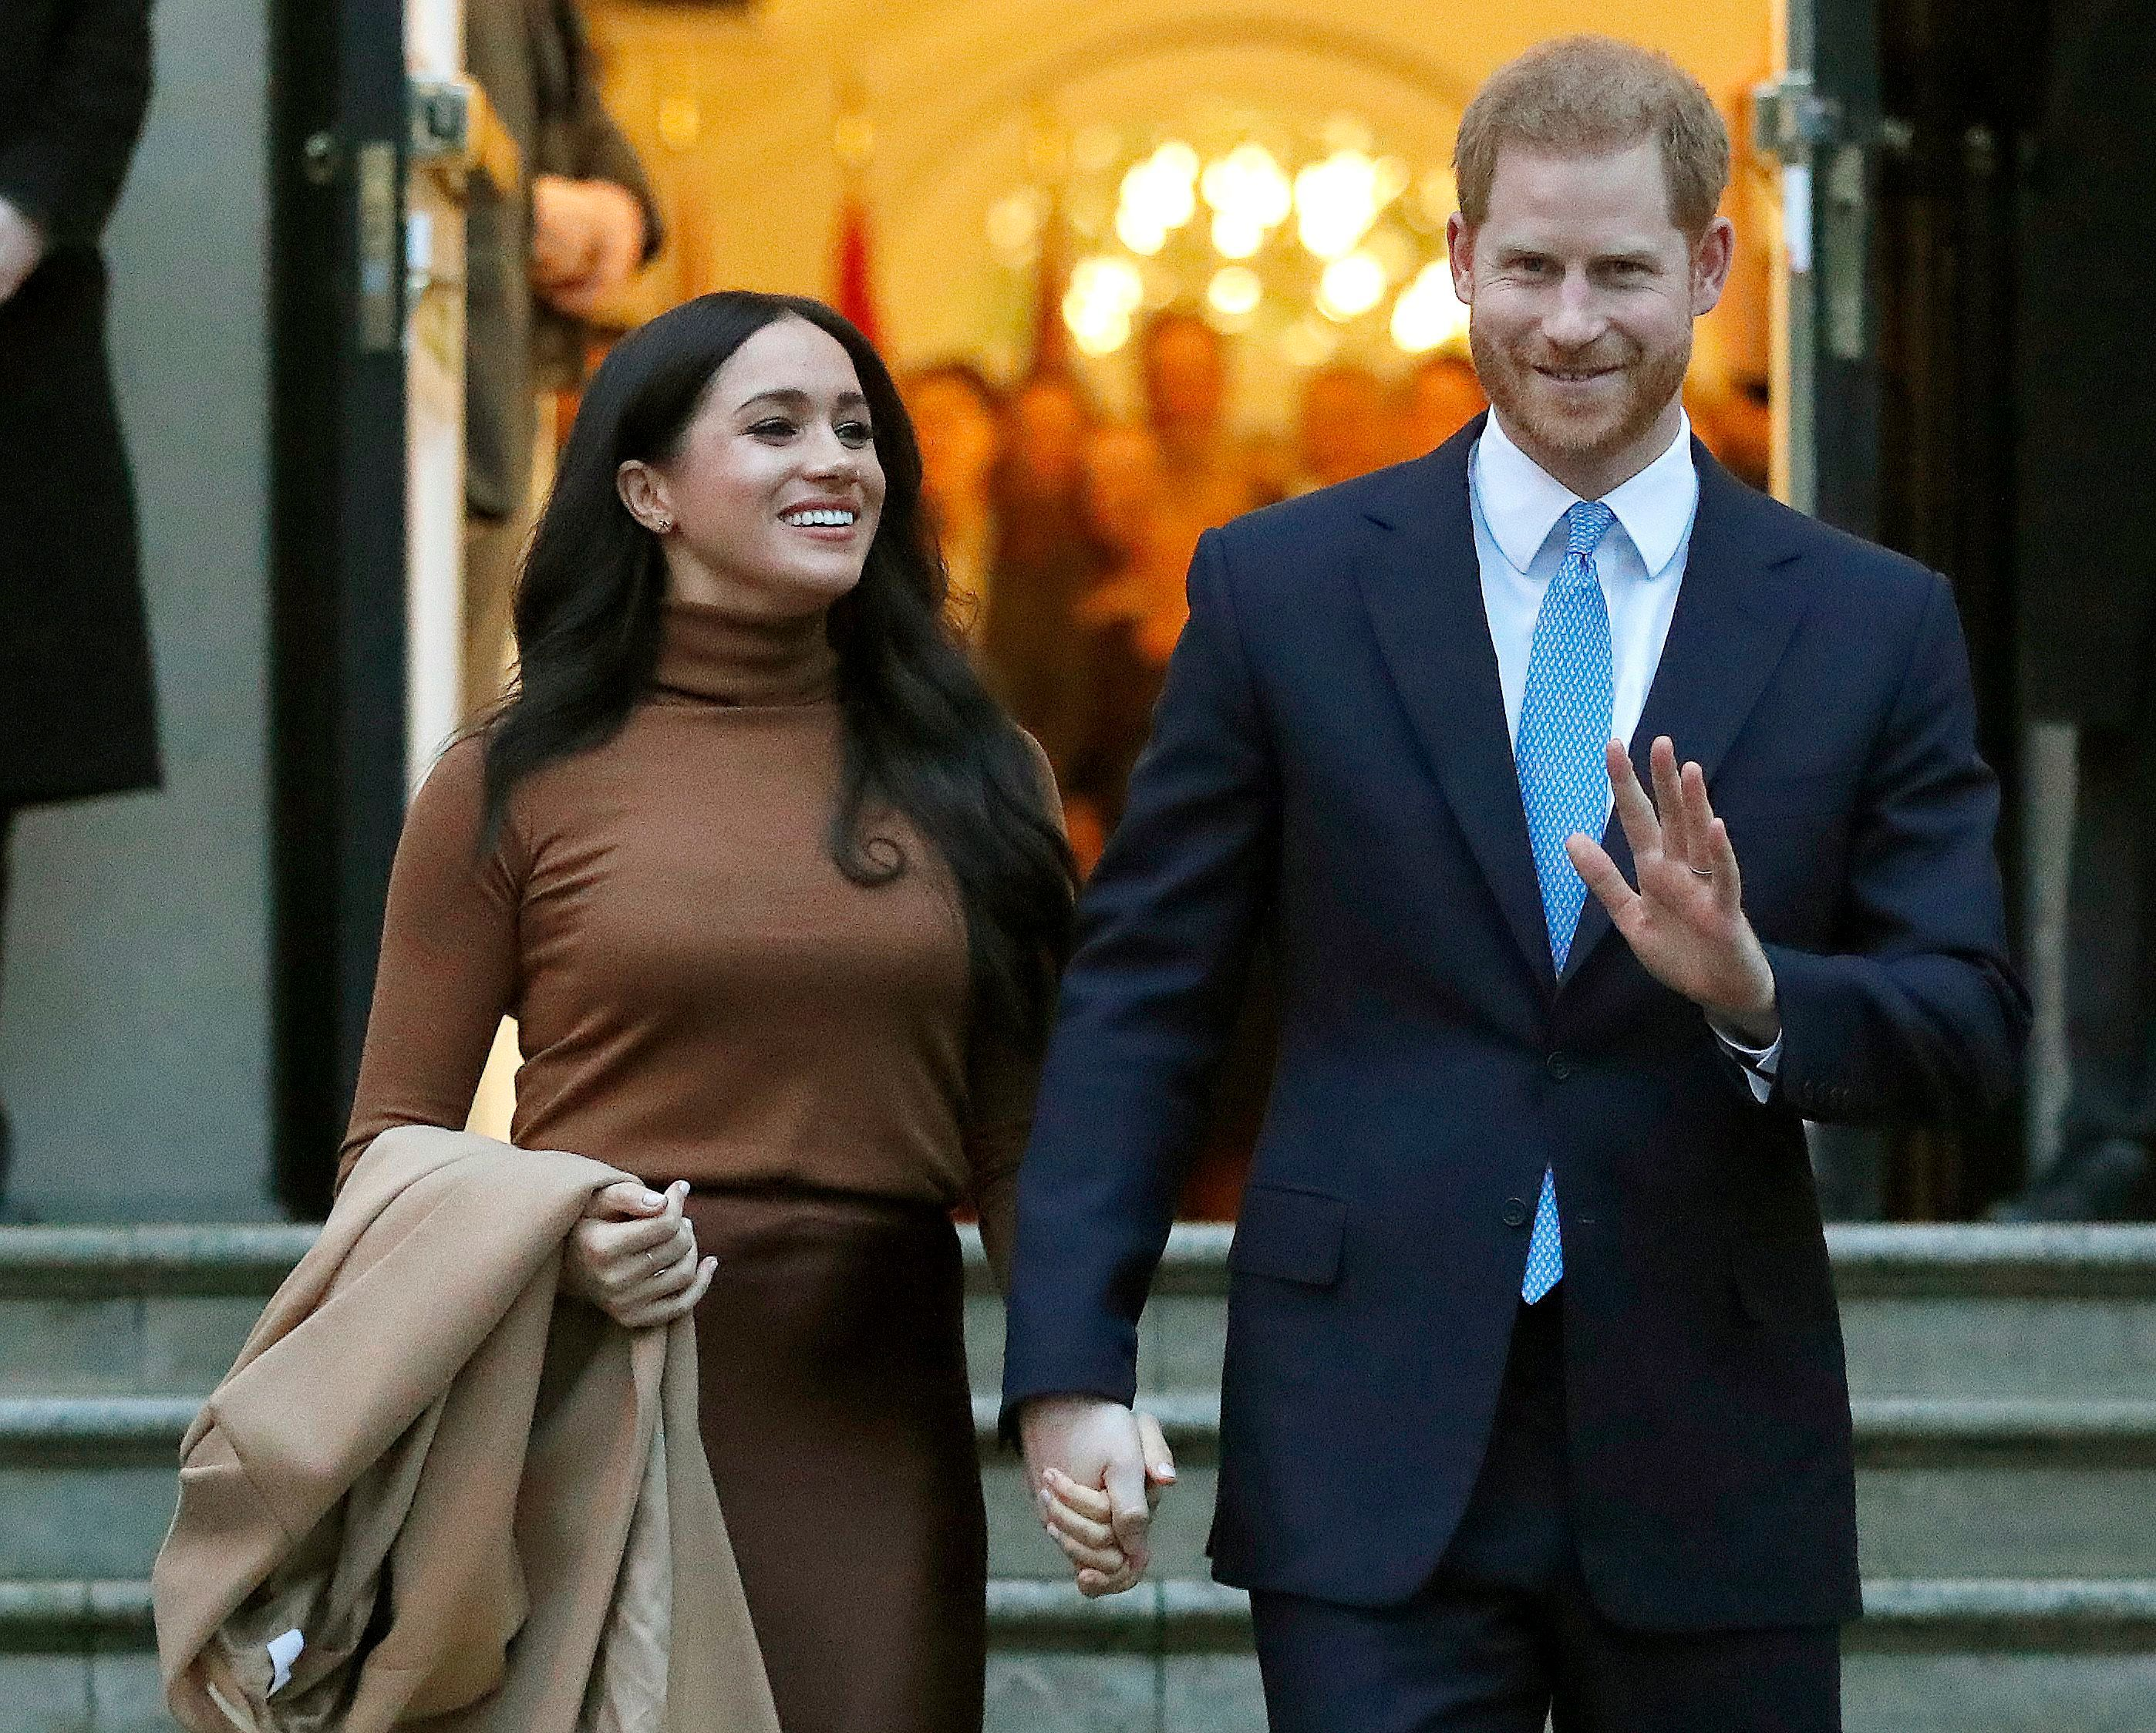 prince harry meghan markle not worried about money after royal split https www intouchweekly com posts prince harry meghan markle not worried about money after royal split